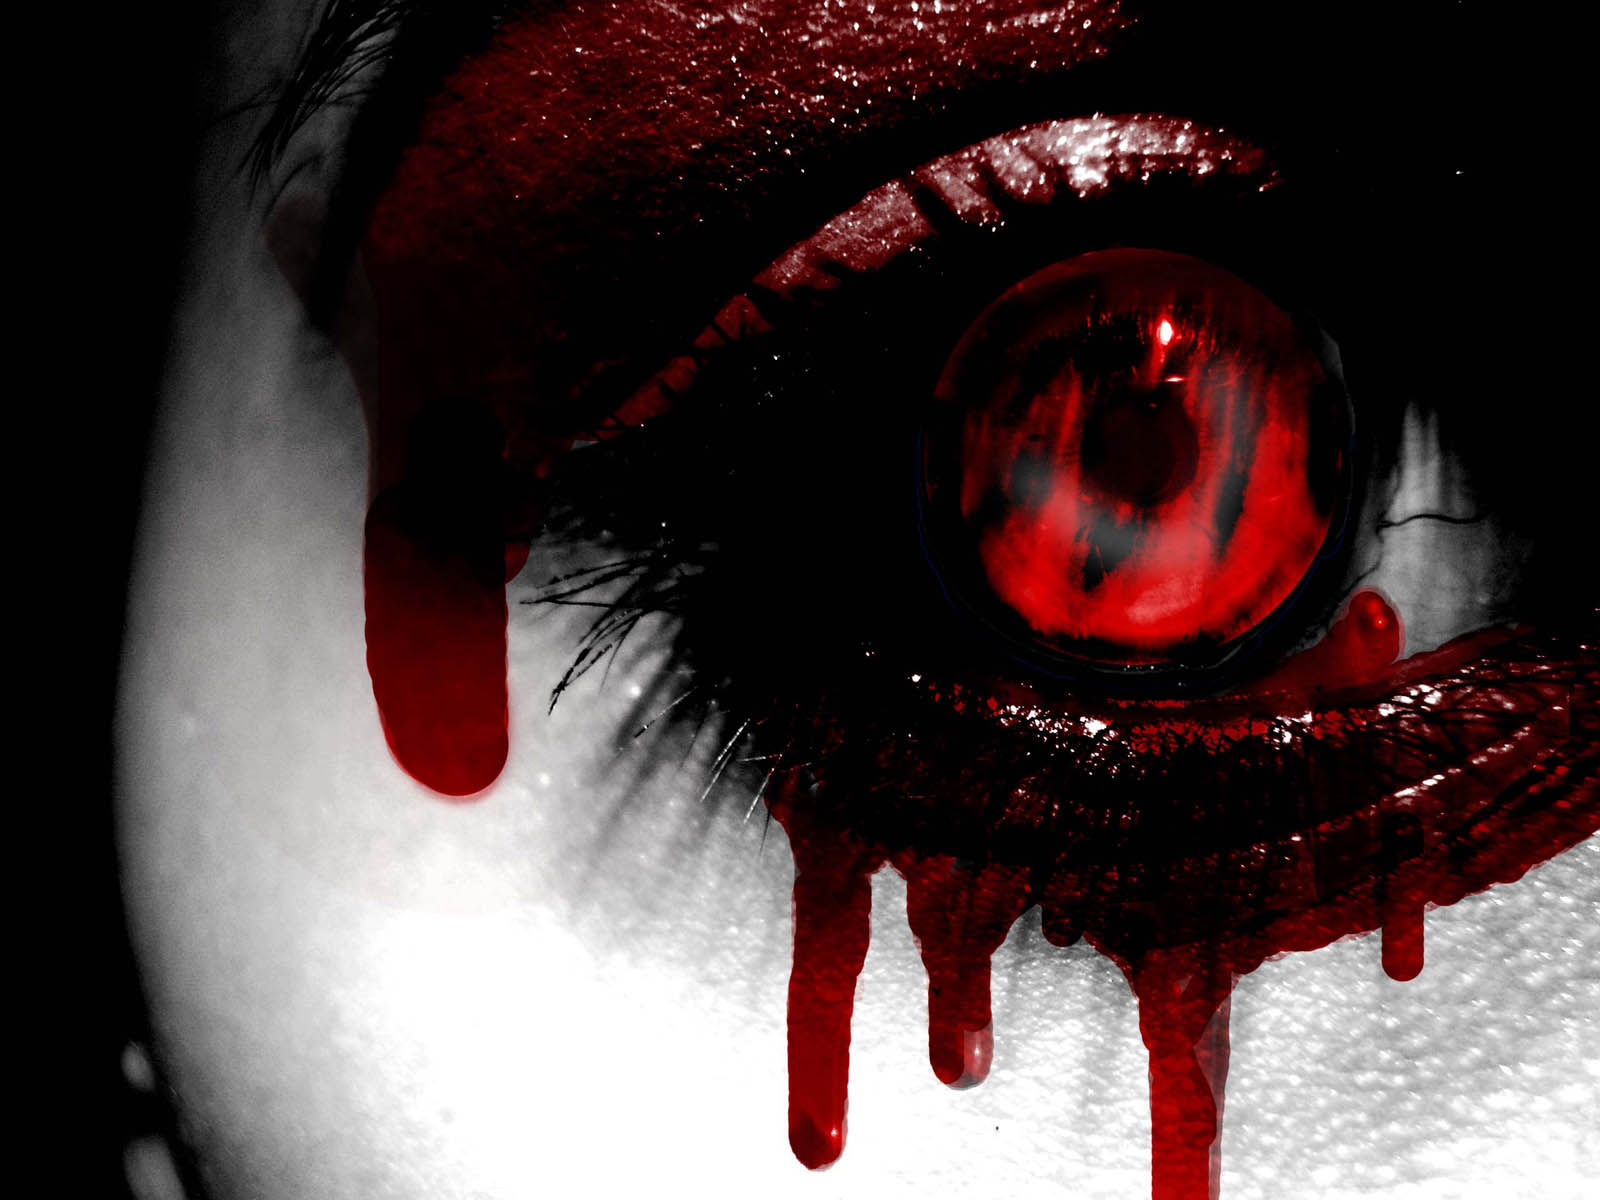 Keywords Horror Eye Wallpapers Horror EyeDesktop Wallpapers Horror 1600x1200